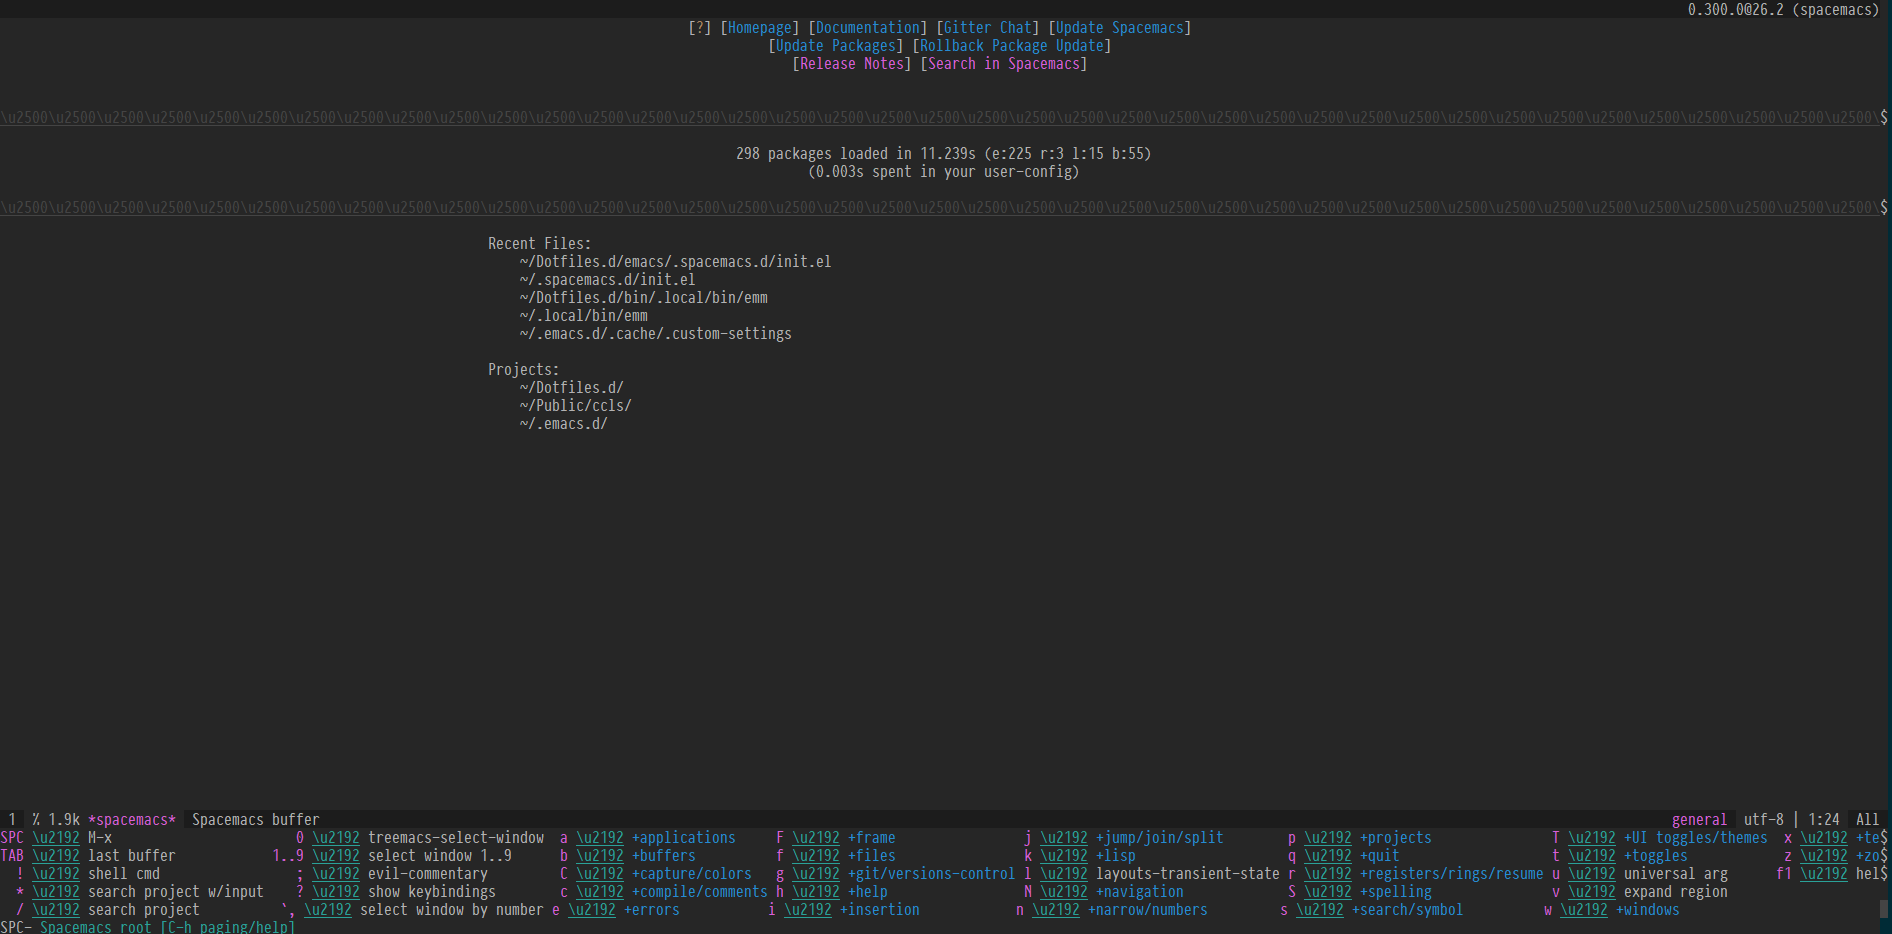 The default theme doesn't work well with tmux+screen-256color